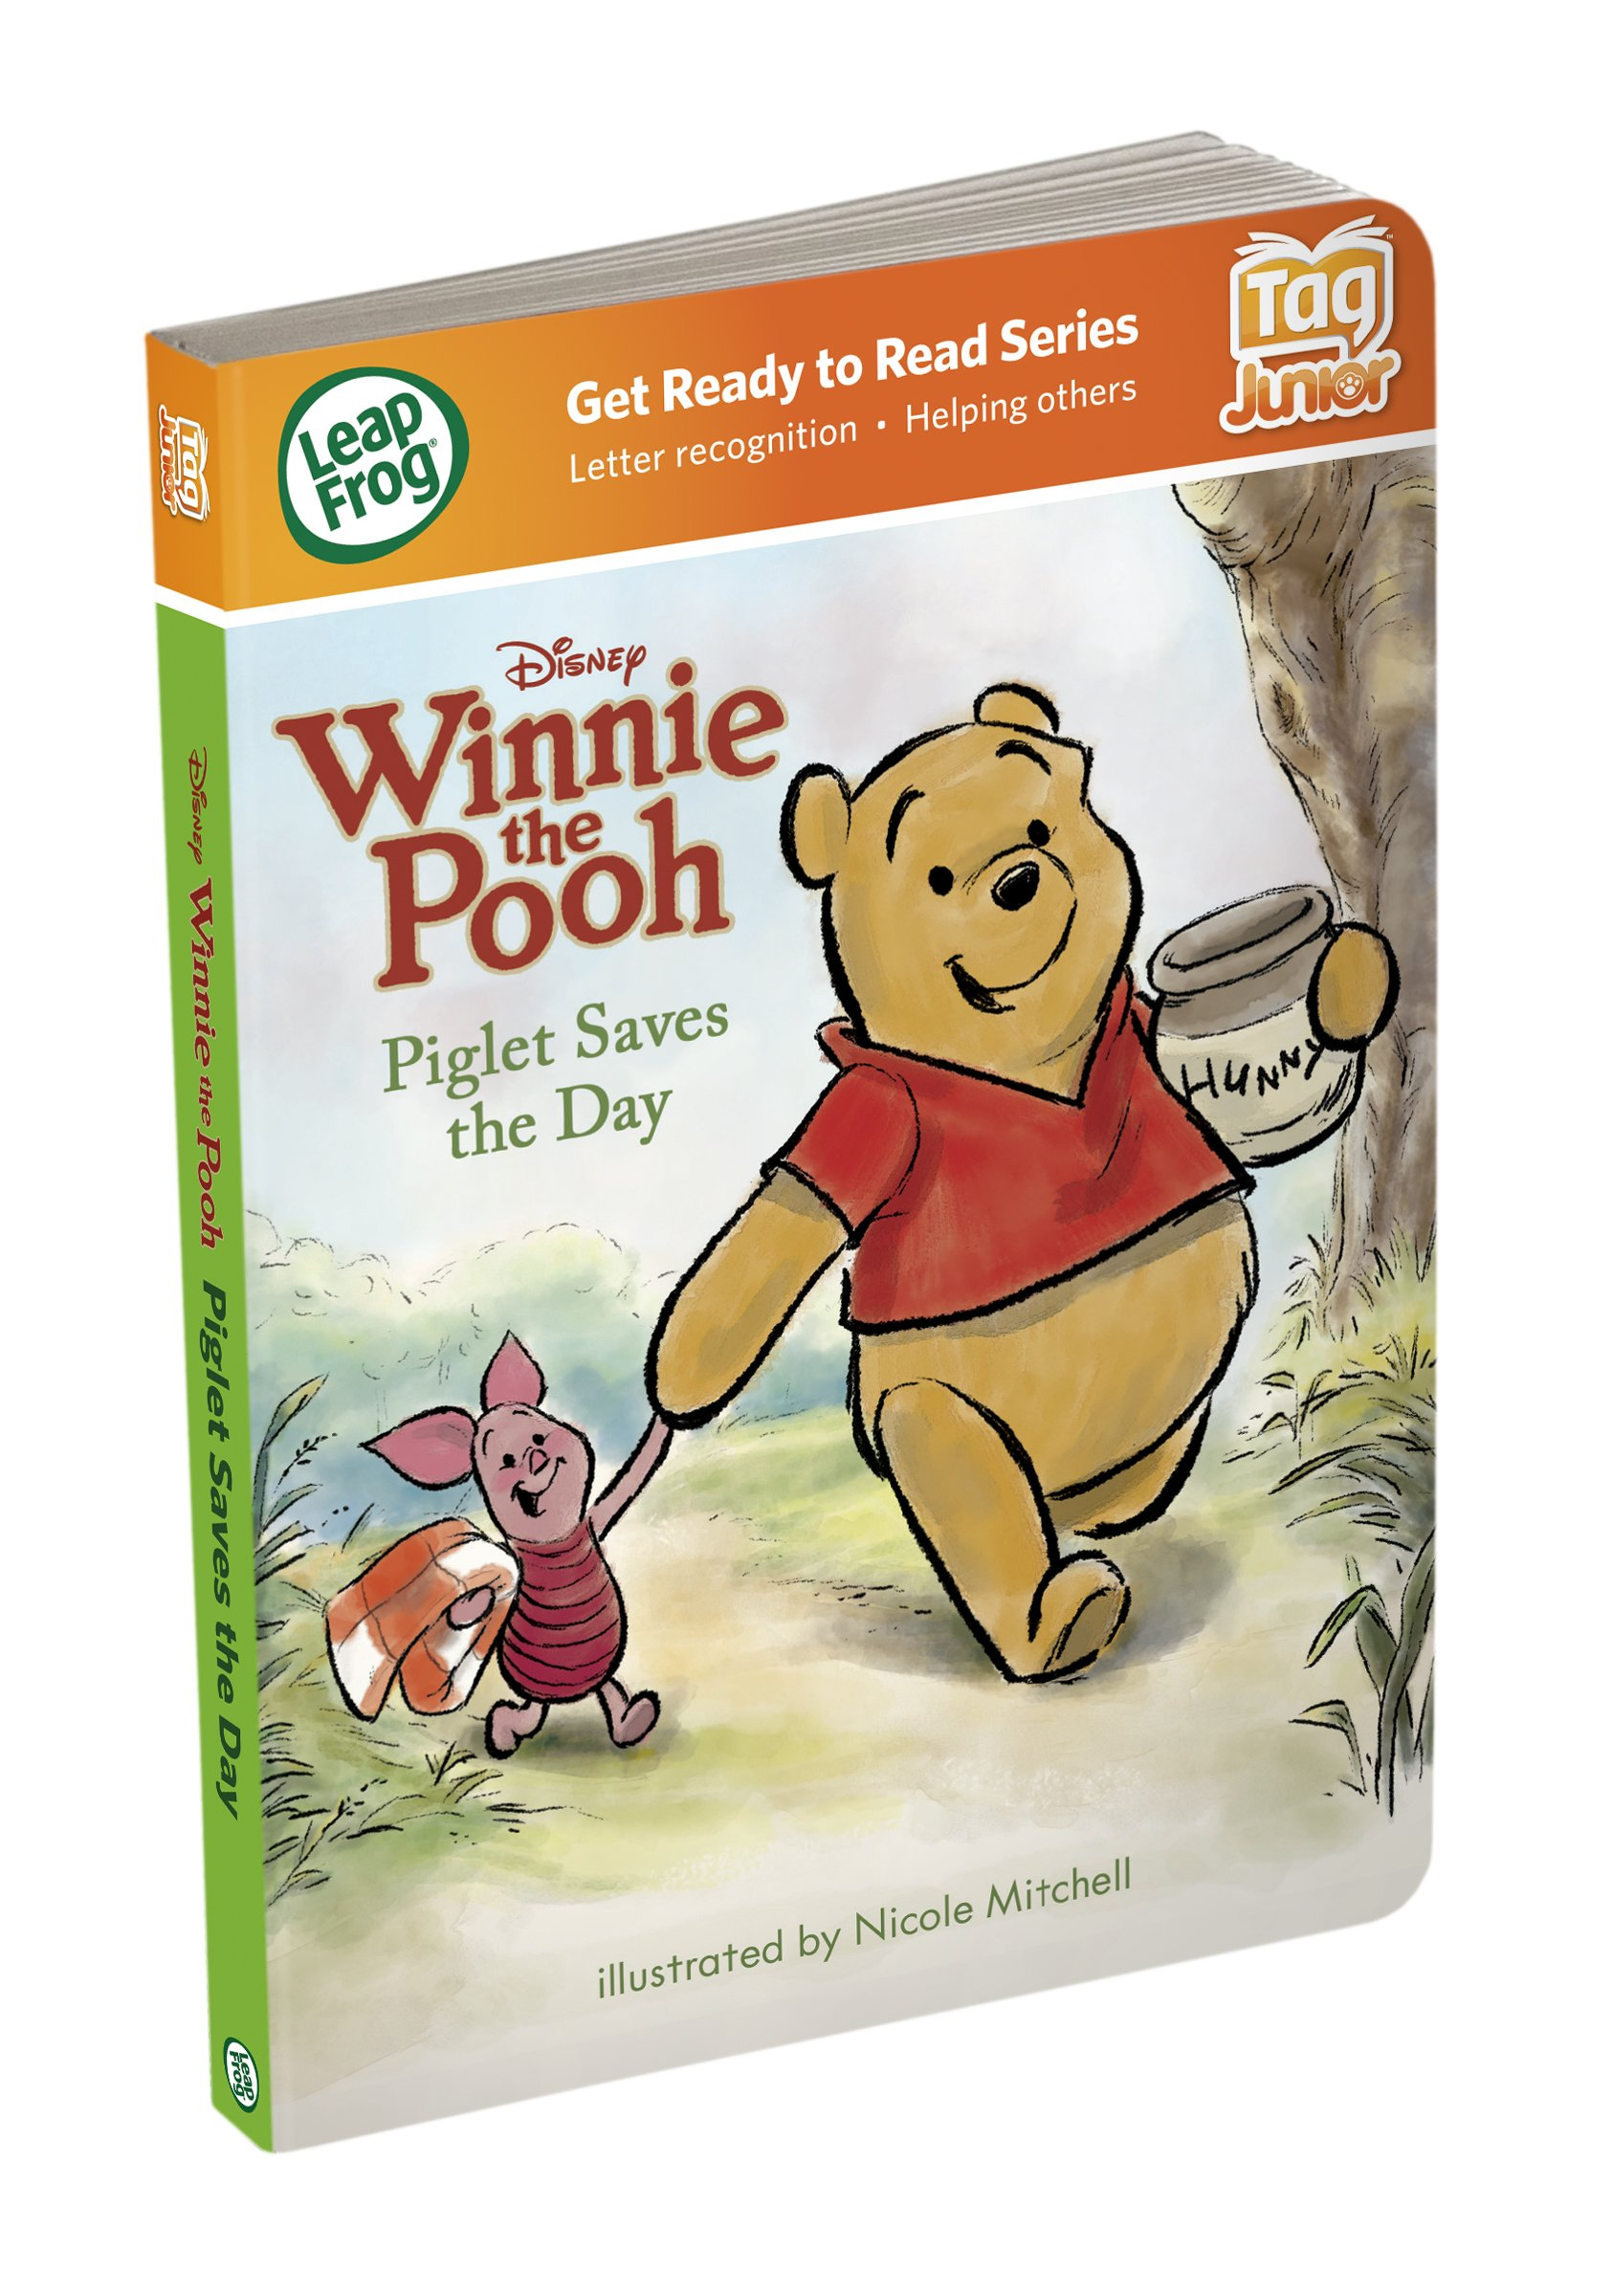 LeapFrog LeapReader Junior Book: Disney's Winnie the Pooh: Piglet Saves the Day (works with Tag Junior)